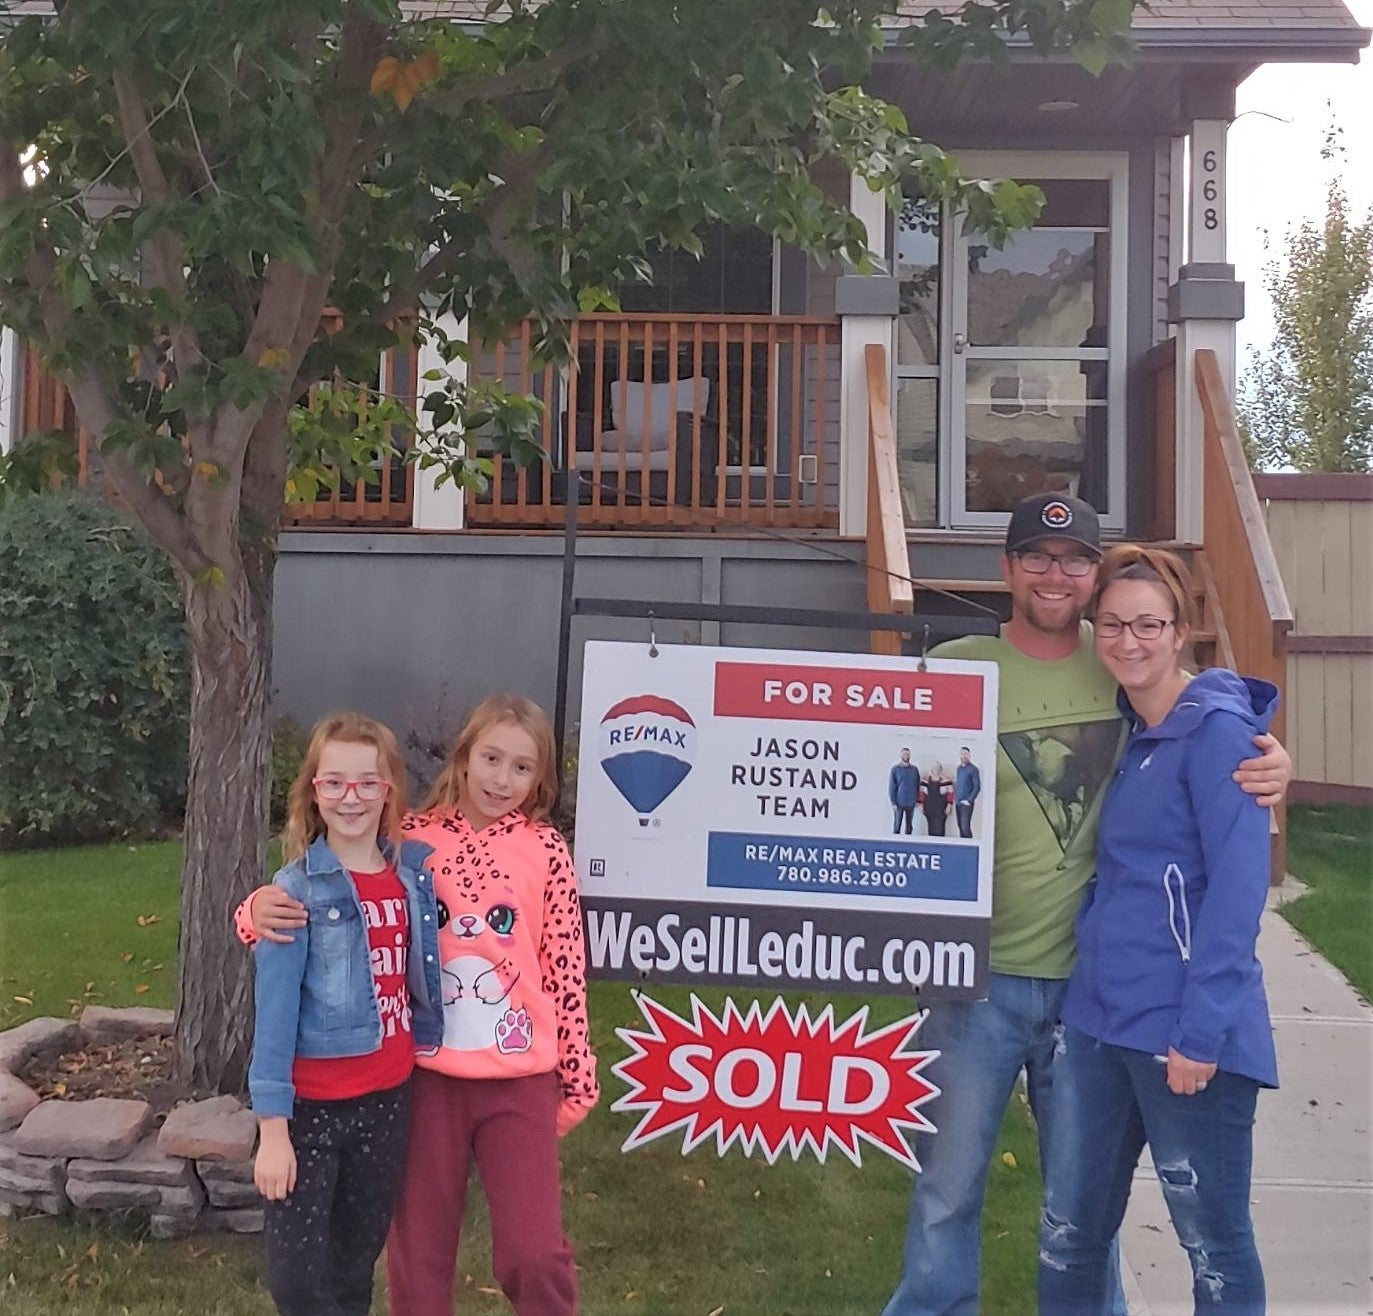 Sell your home faster in Leduc